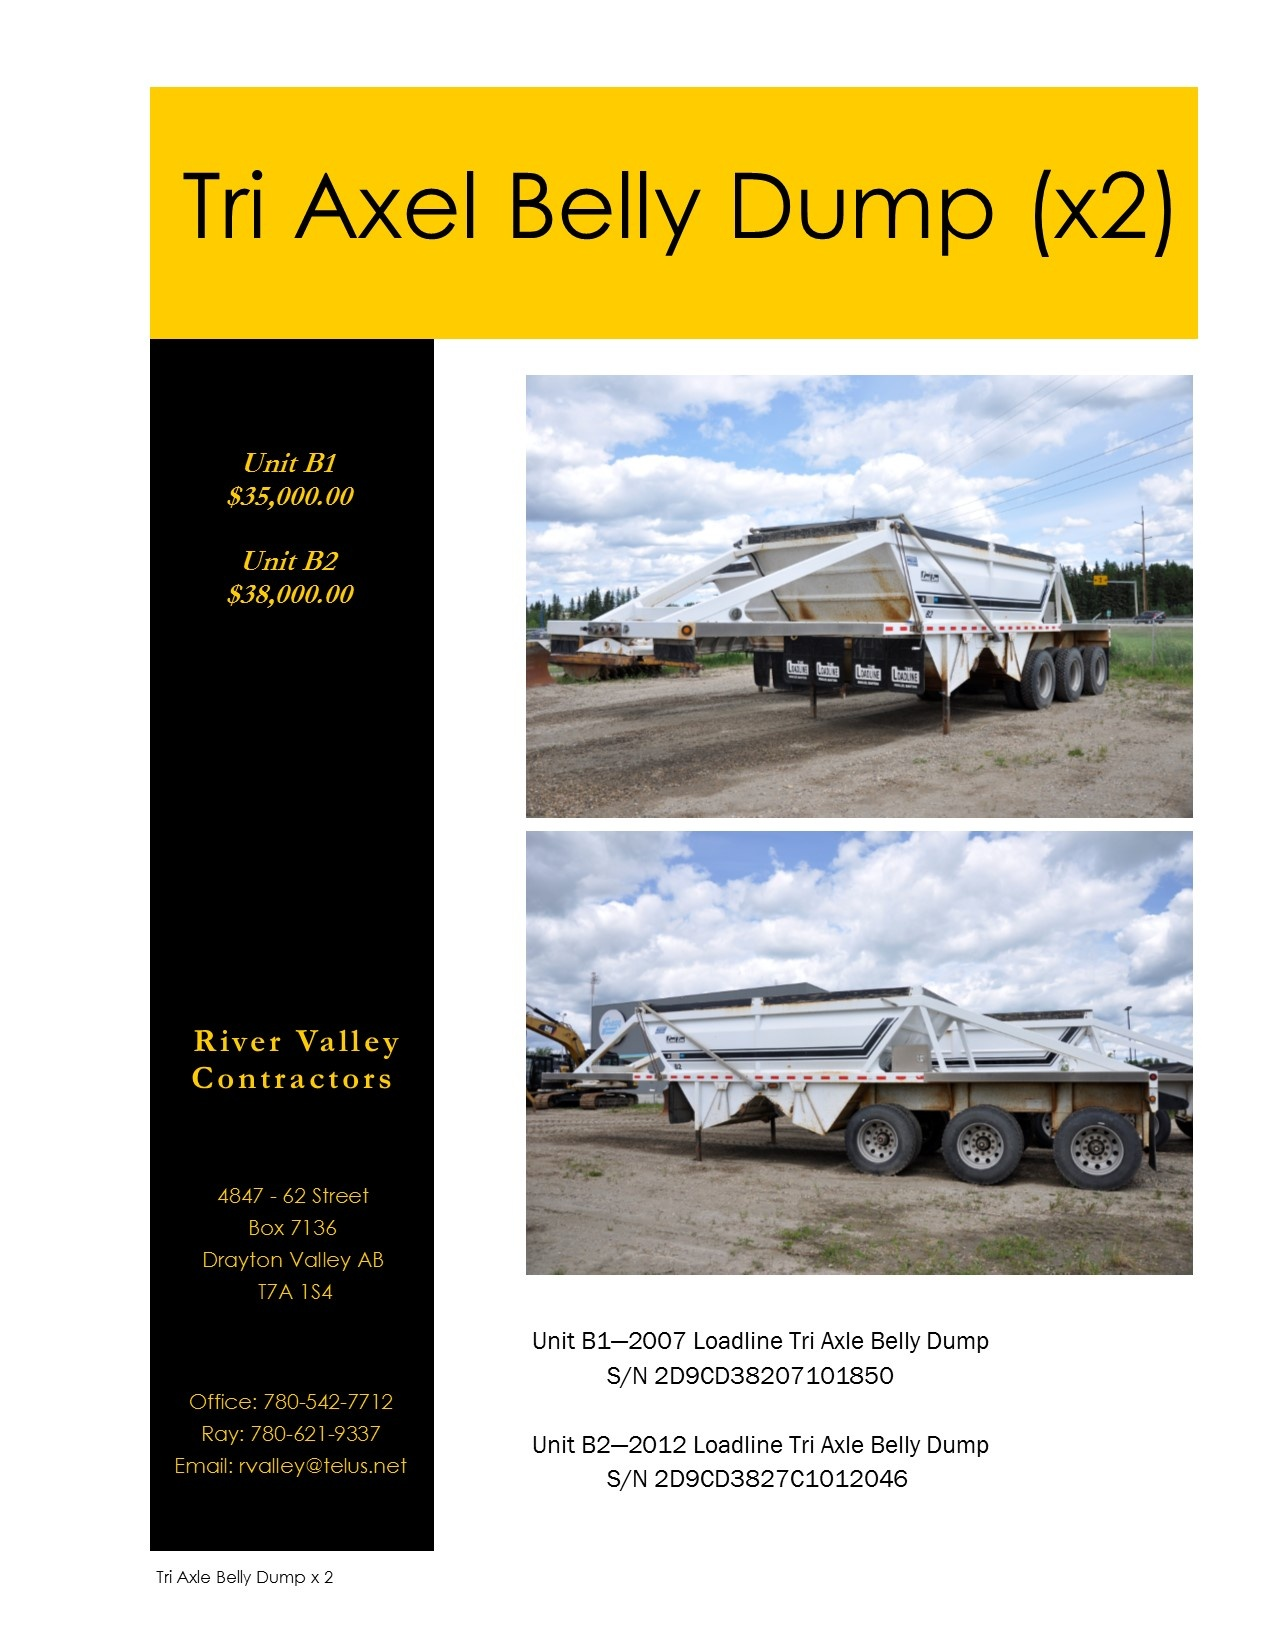 https://0901.nccdn.net/4_2/000/000/051/0ce/Tri-Axle-Belly-Dump-x-3-1275x1650.jpg